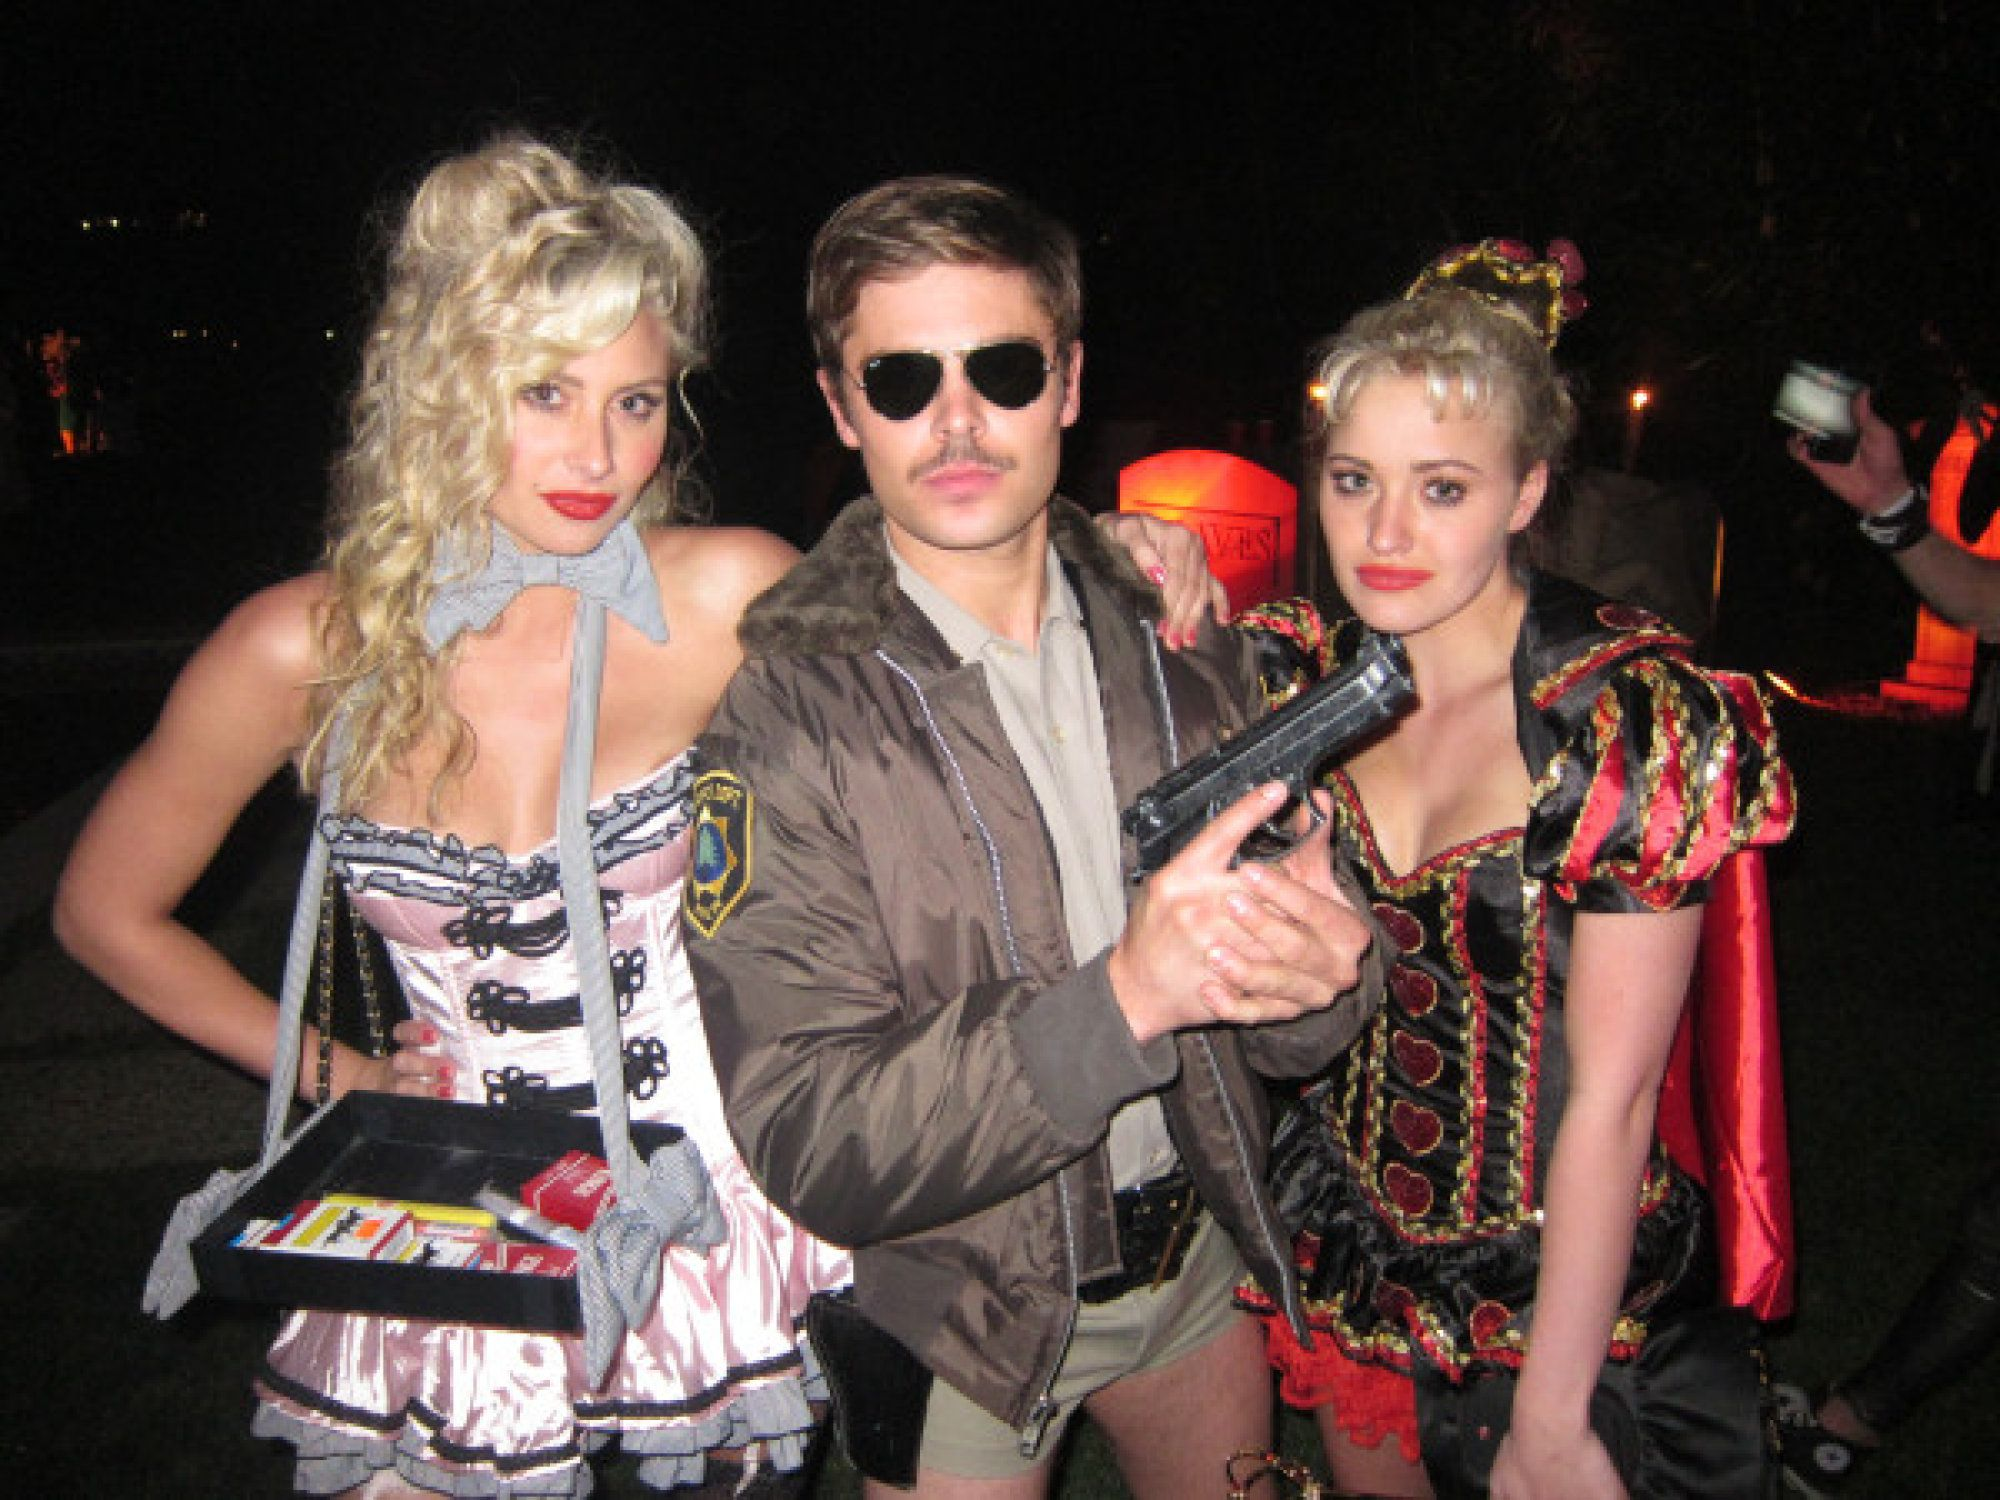 Reno 911 Halloween Costume.Here Are The 33 Best Celebrity Halloween Costumes Of All Time